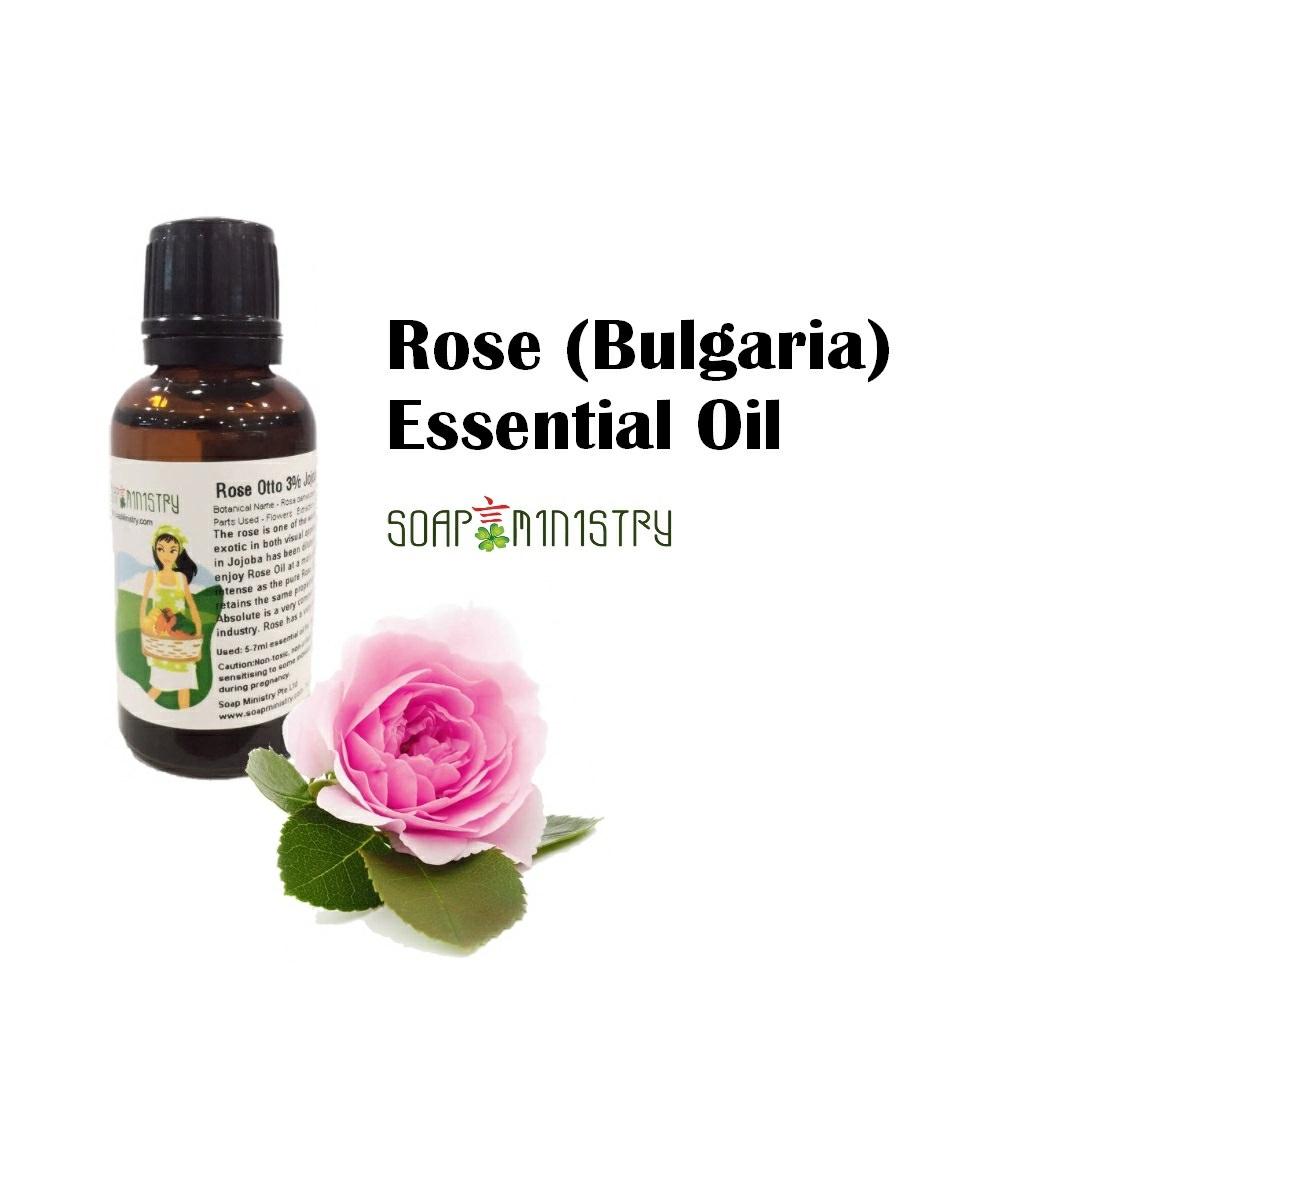 Rose Otto 3% Jojoba Essential Oil 1L